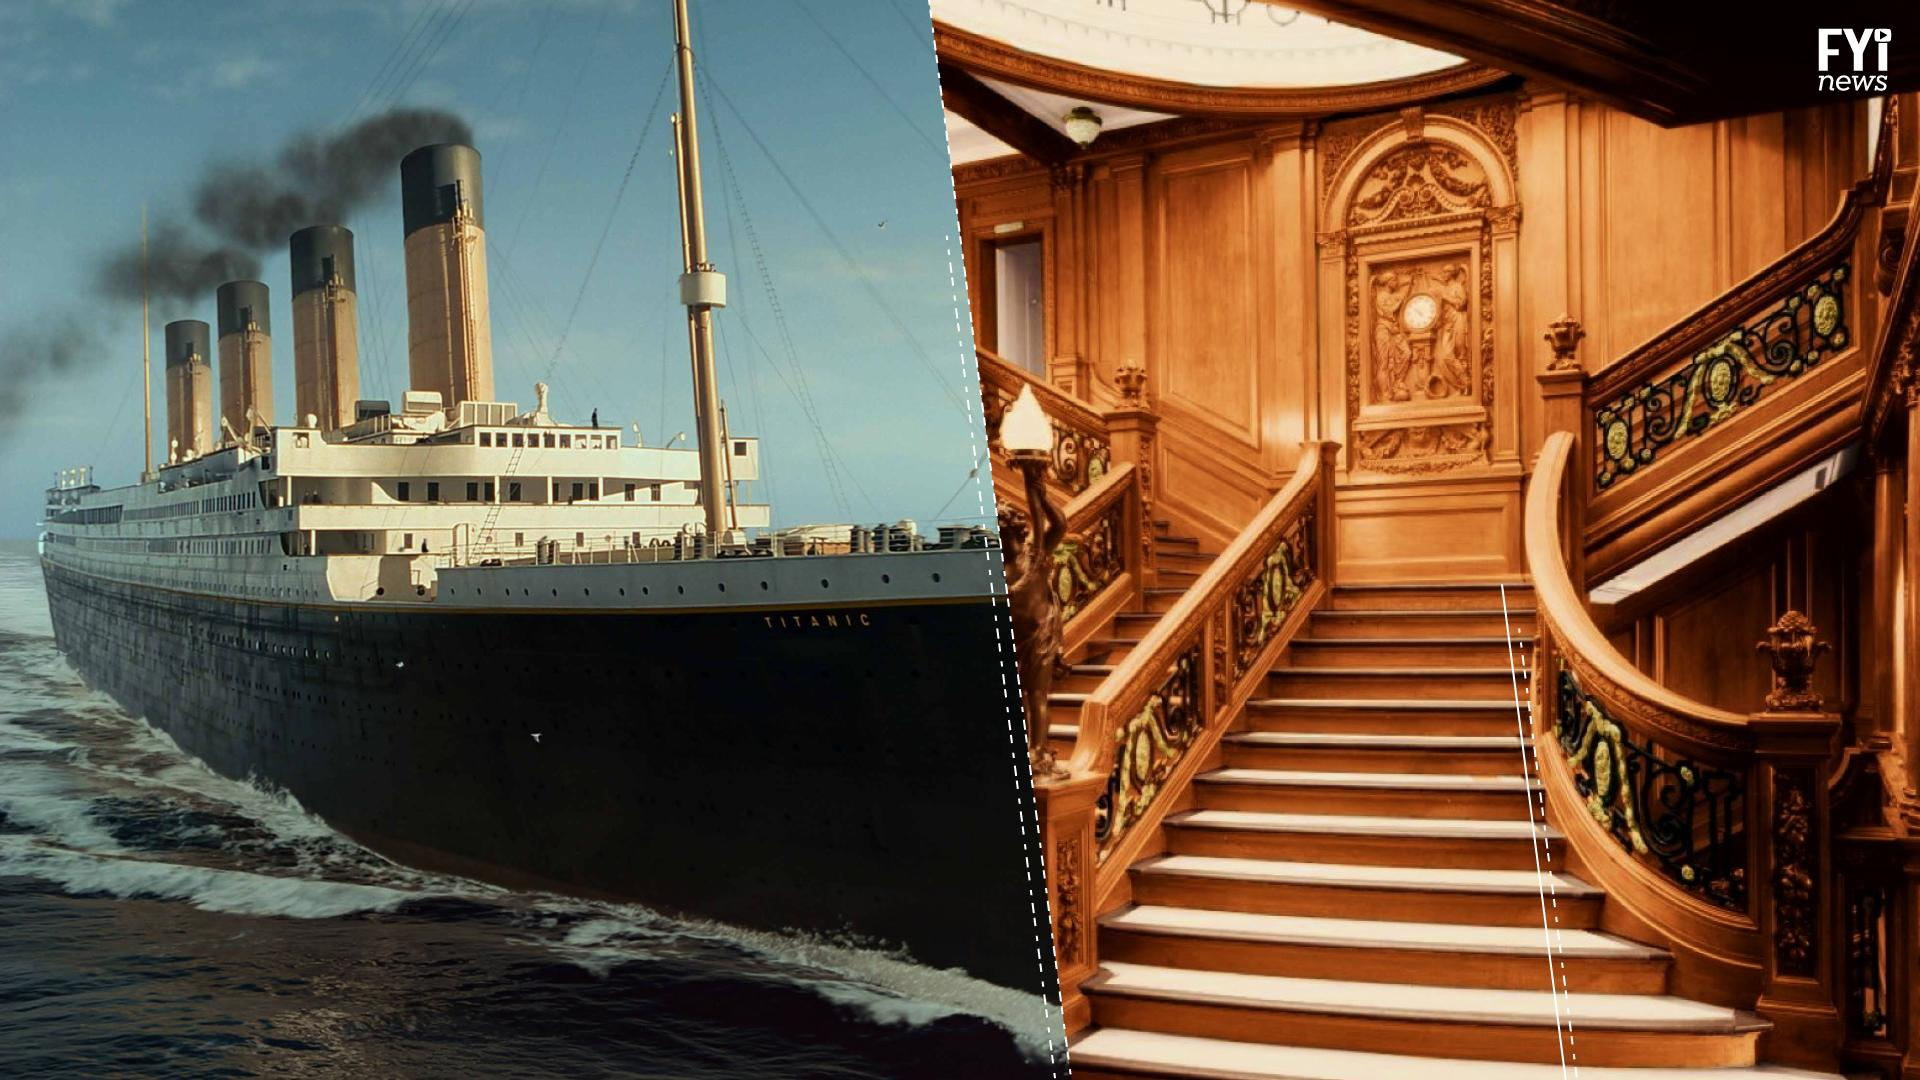 Travel to the deep blue and visit the Titanic